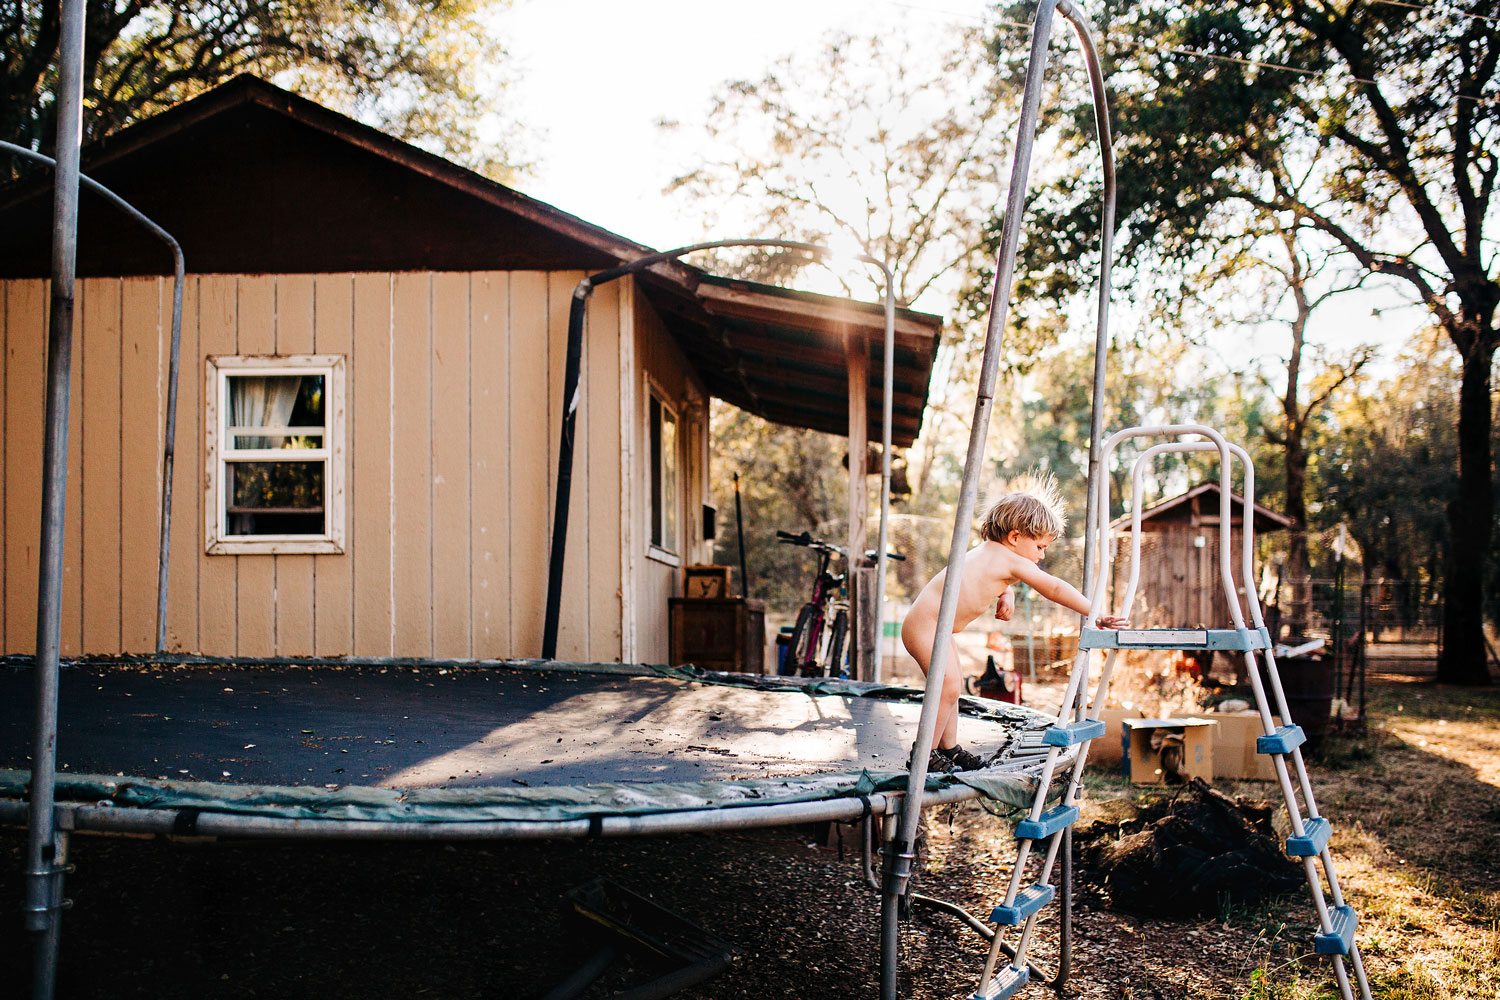 A boy jumps on the trampoline during a lifestyle photo session with Amy Wright Photography in Roseville, California.